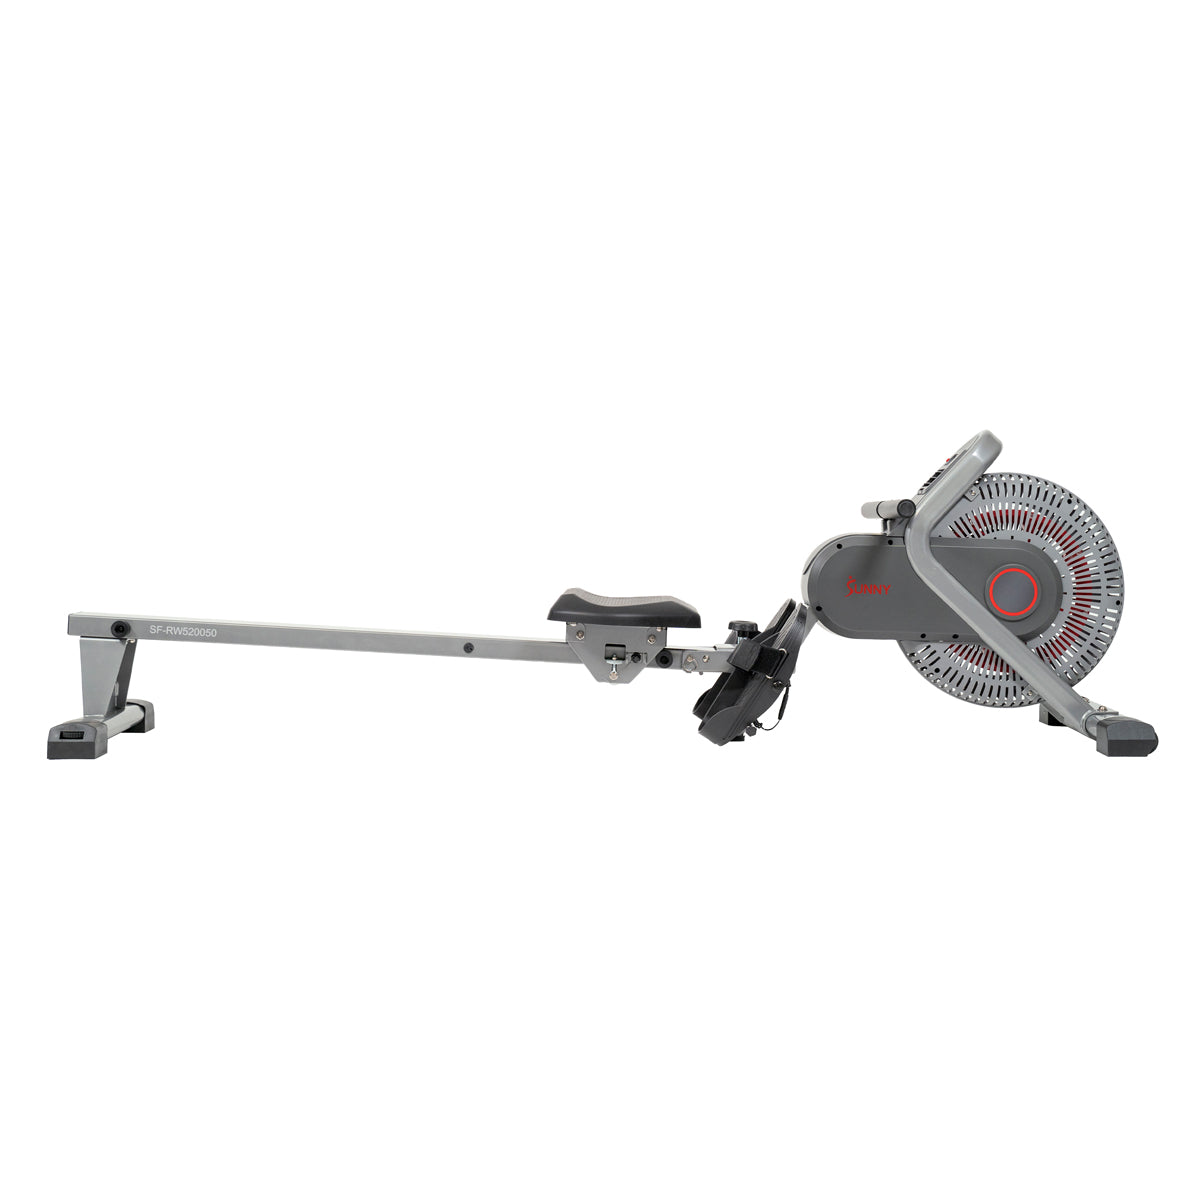 sunny-health-fitness-rowers-air-resistance-rowing-machine-SF-RW520050--Convenient-Rowing